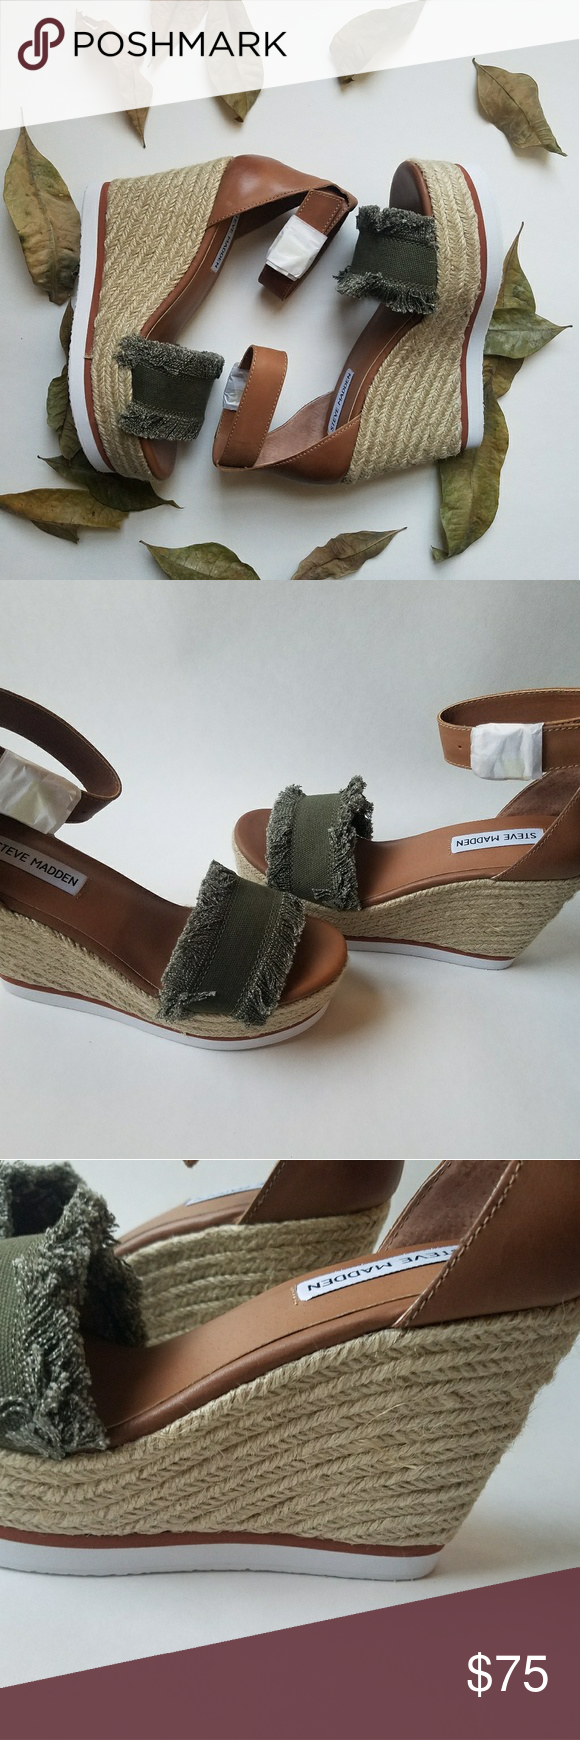 092e4a18067 Steve Madden Valley Wedge SANDAL - Simply BEAUTIFUL Steve Madden Shoes  Wedges